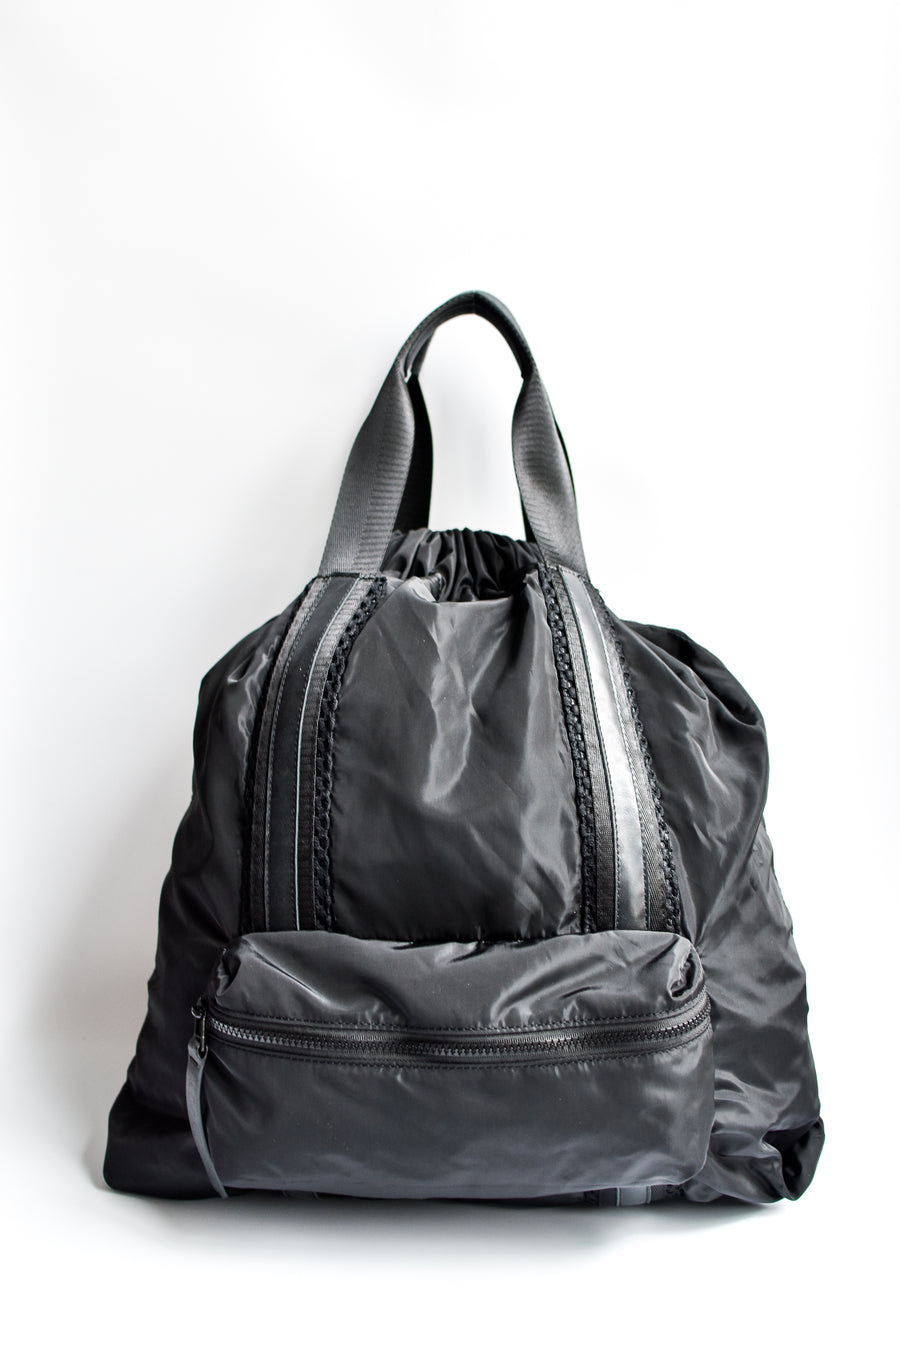 Black nylon convertible backpack tote with leather details.